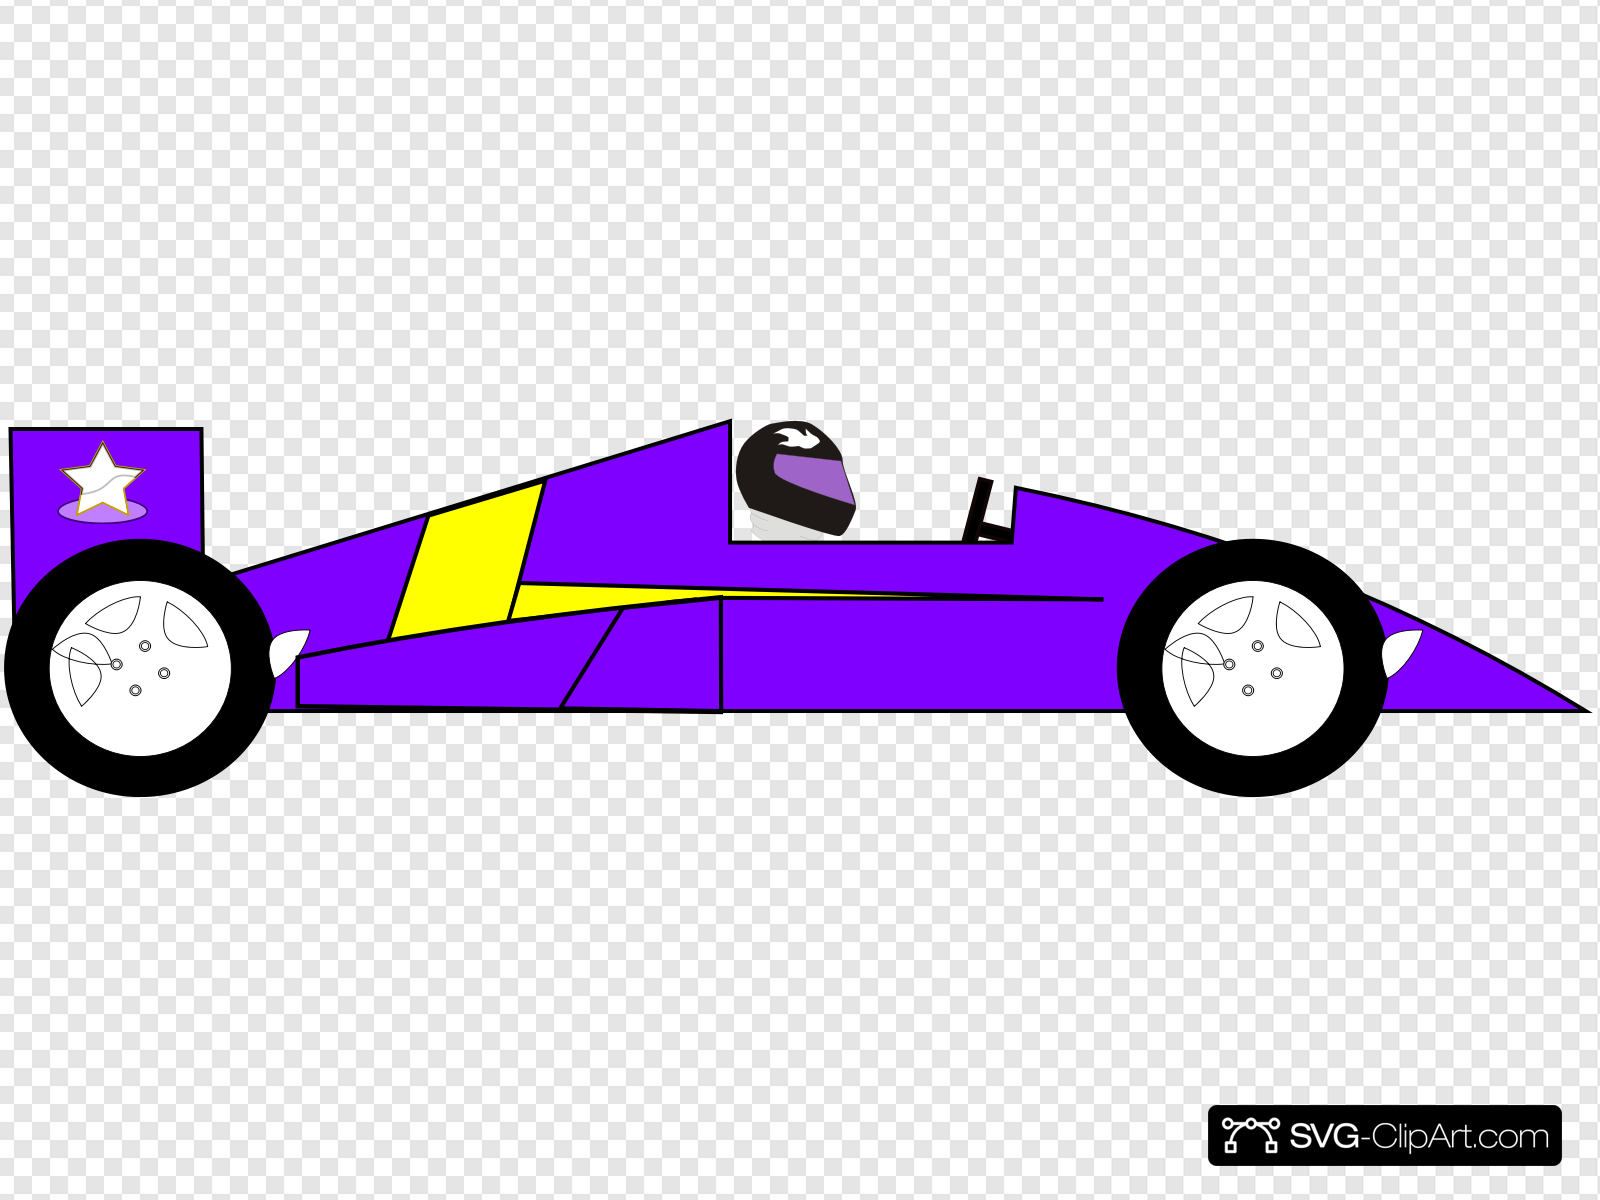 Purple Racecar Clip art, Icon and SVG.